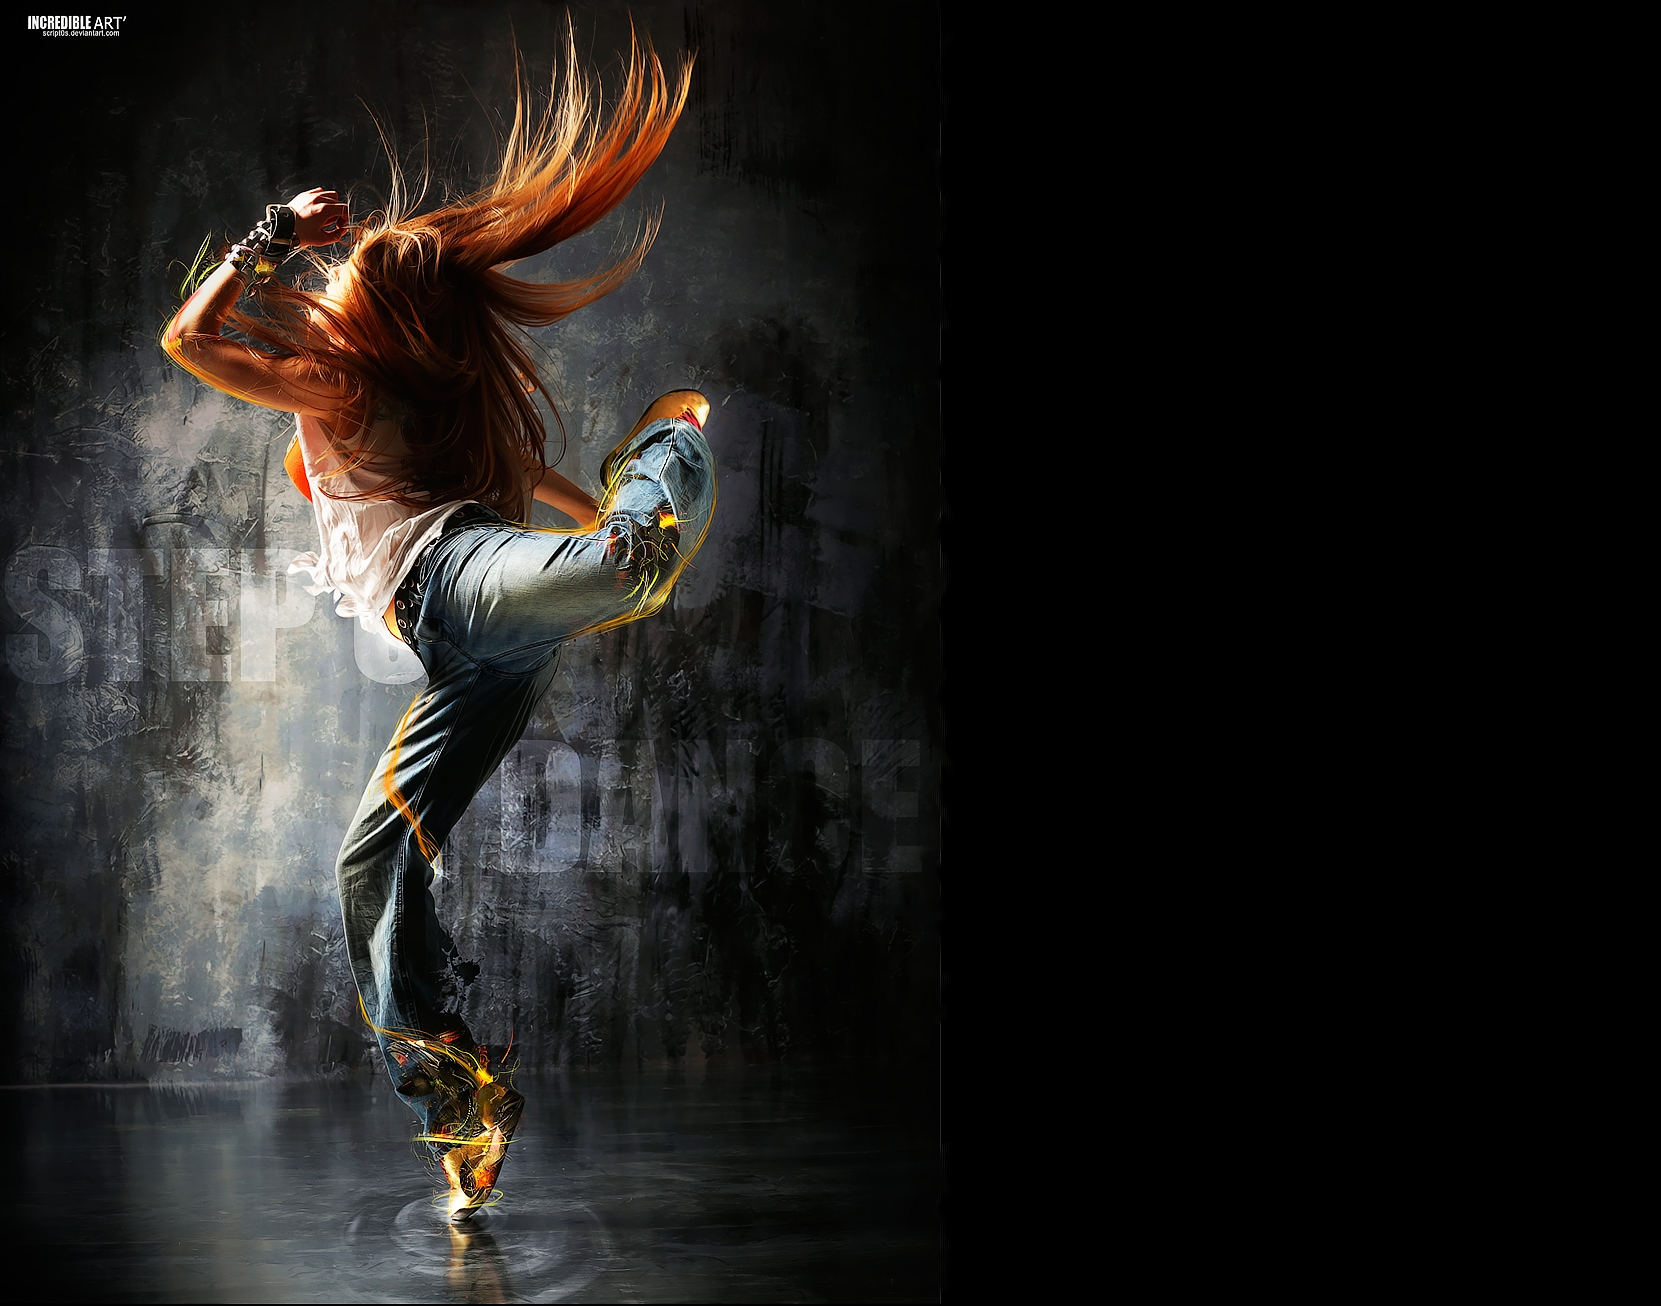 fond dcran de danse increadble Wallpaper   ForWallpapercom 1661x1306